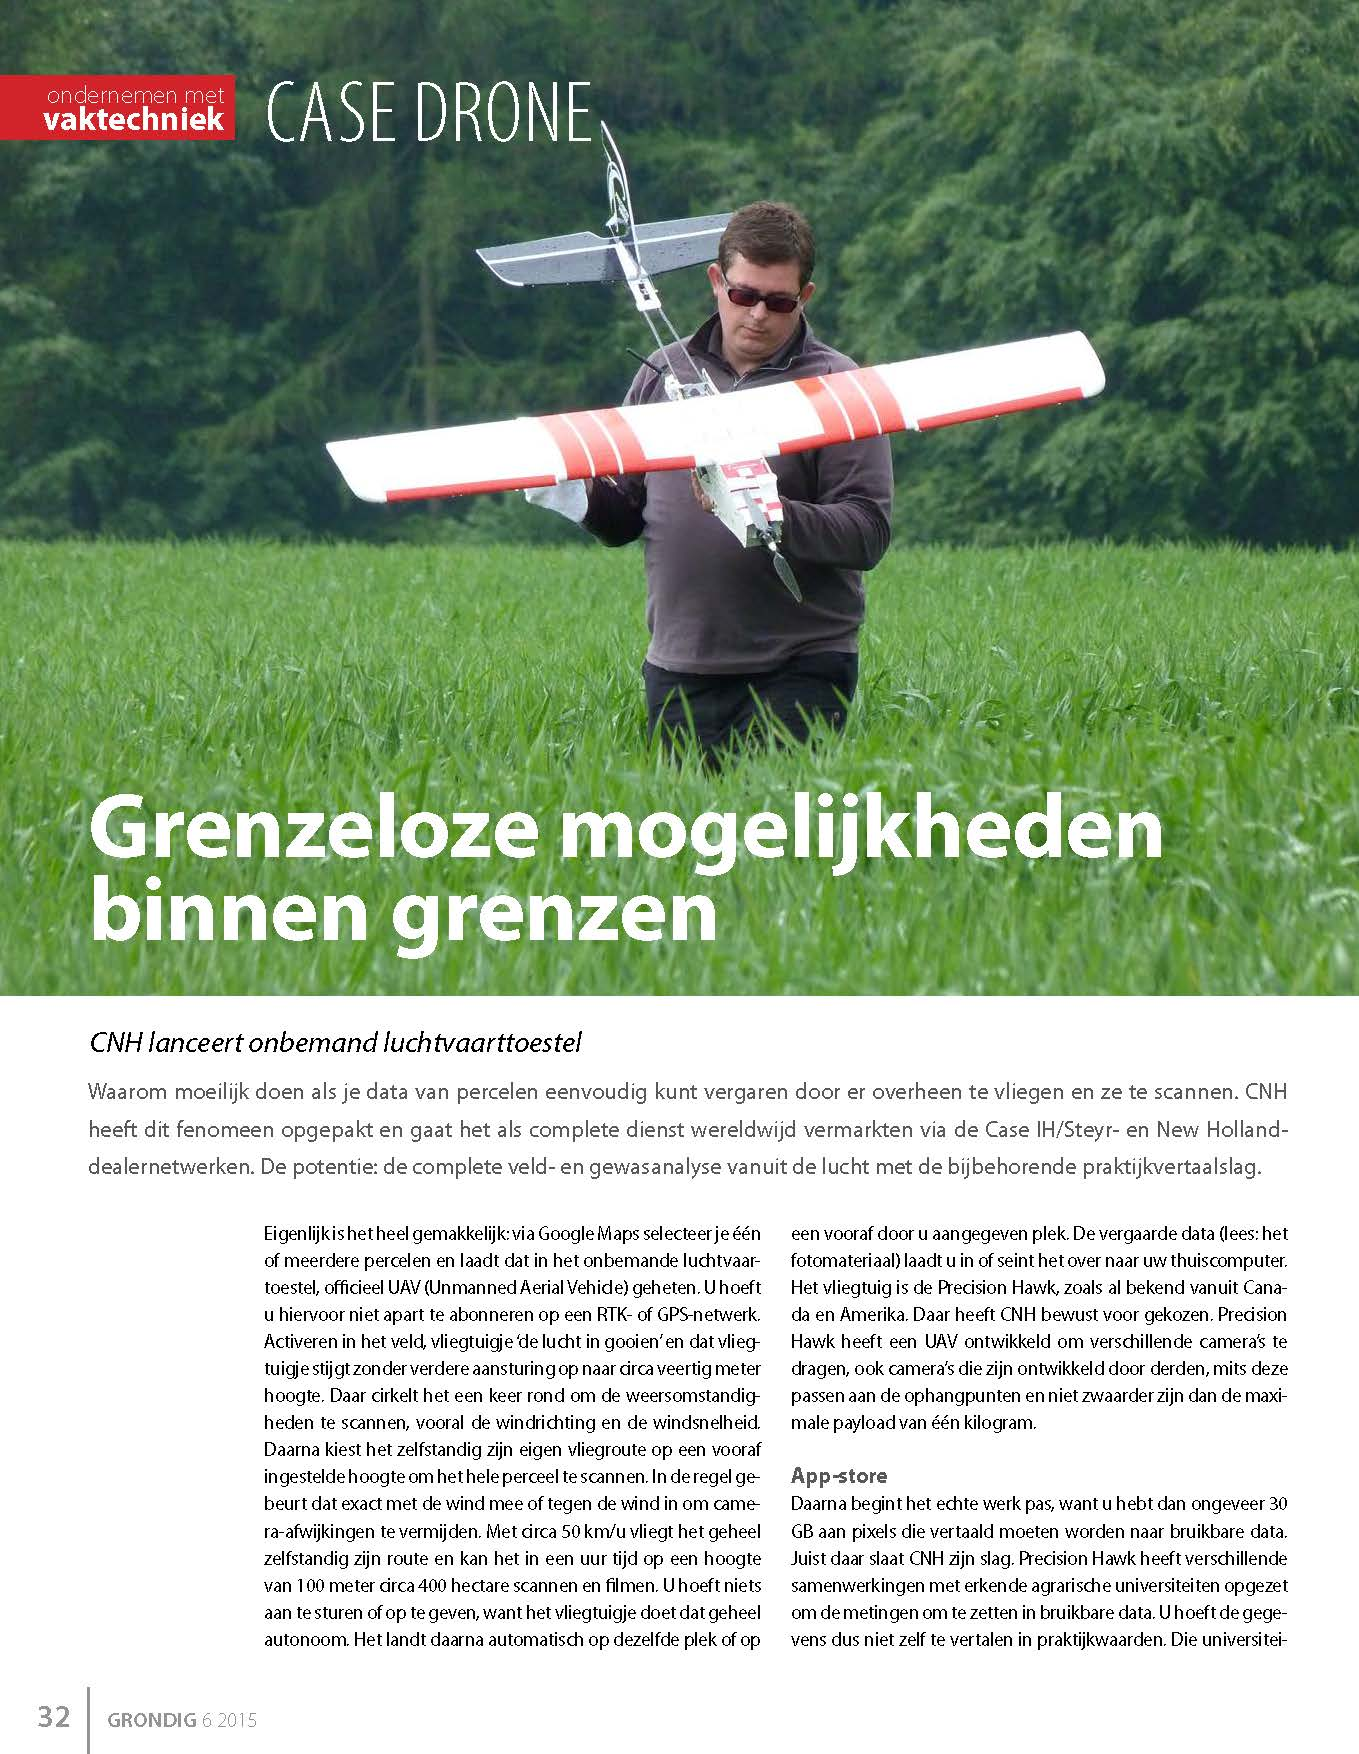 32 - 33 case drone_Page_1